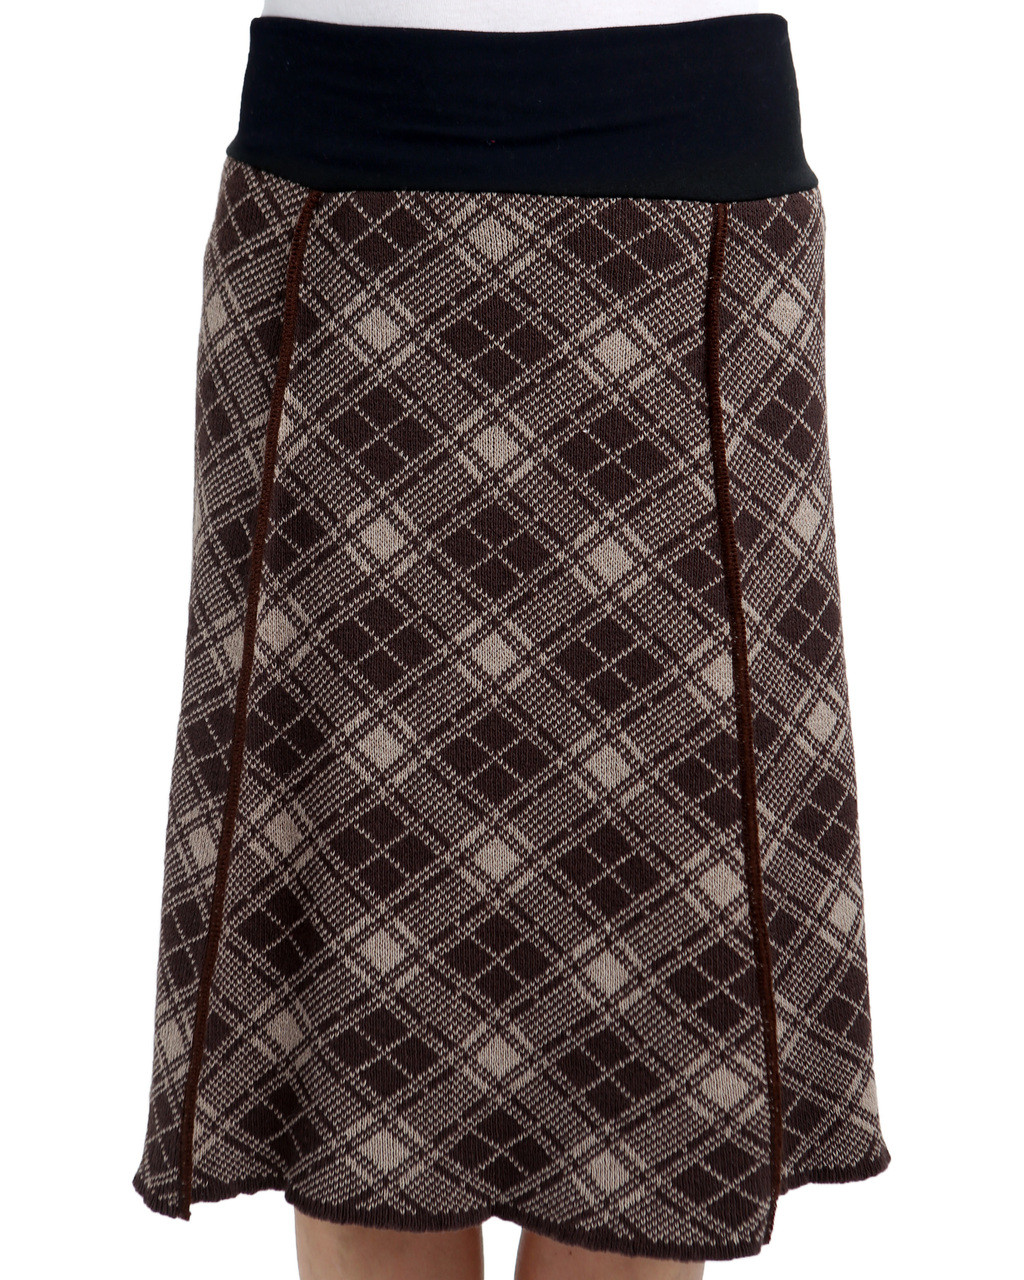 Plaid Taupe Plaid 4 Panel Skirt Coffee Taupe